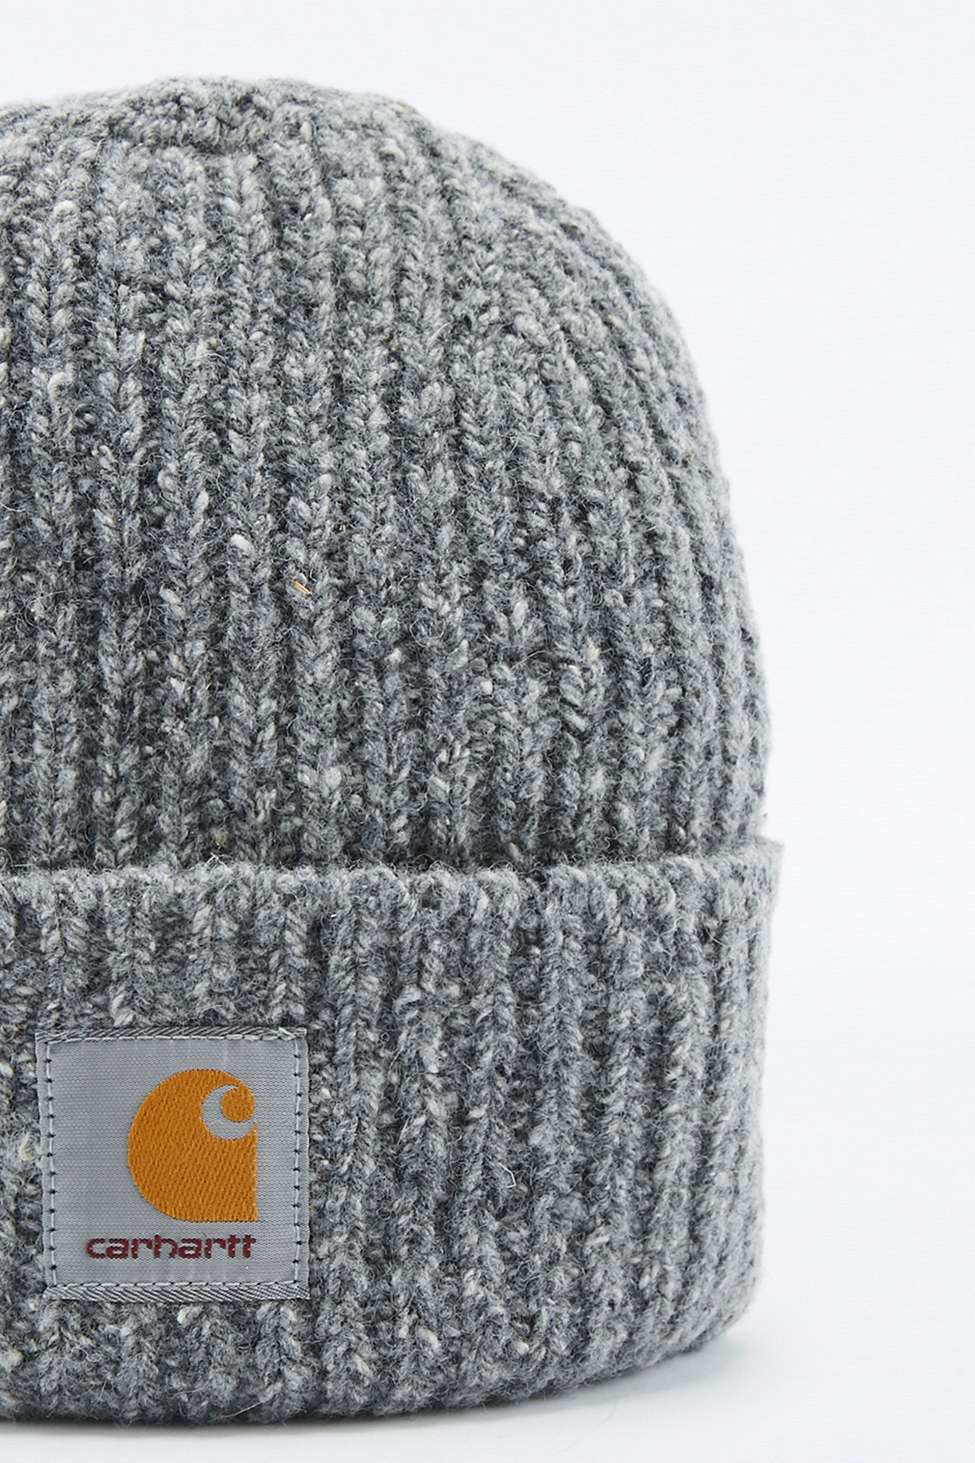 dd40baa0 Carhartt Anglistic Charcoal Beanie in Gray for Men - Lyst